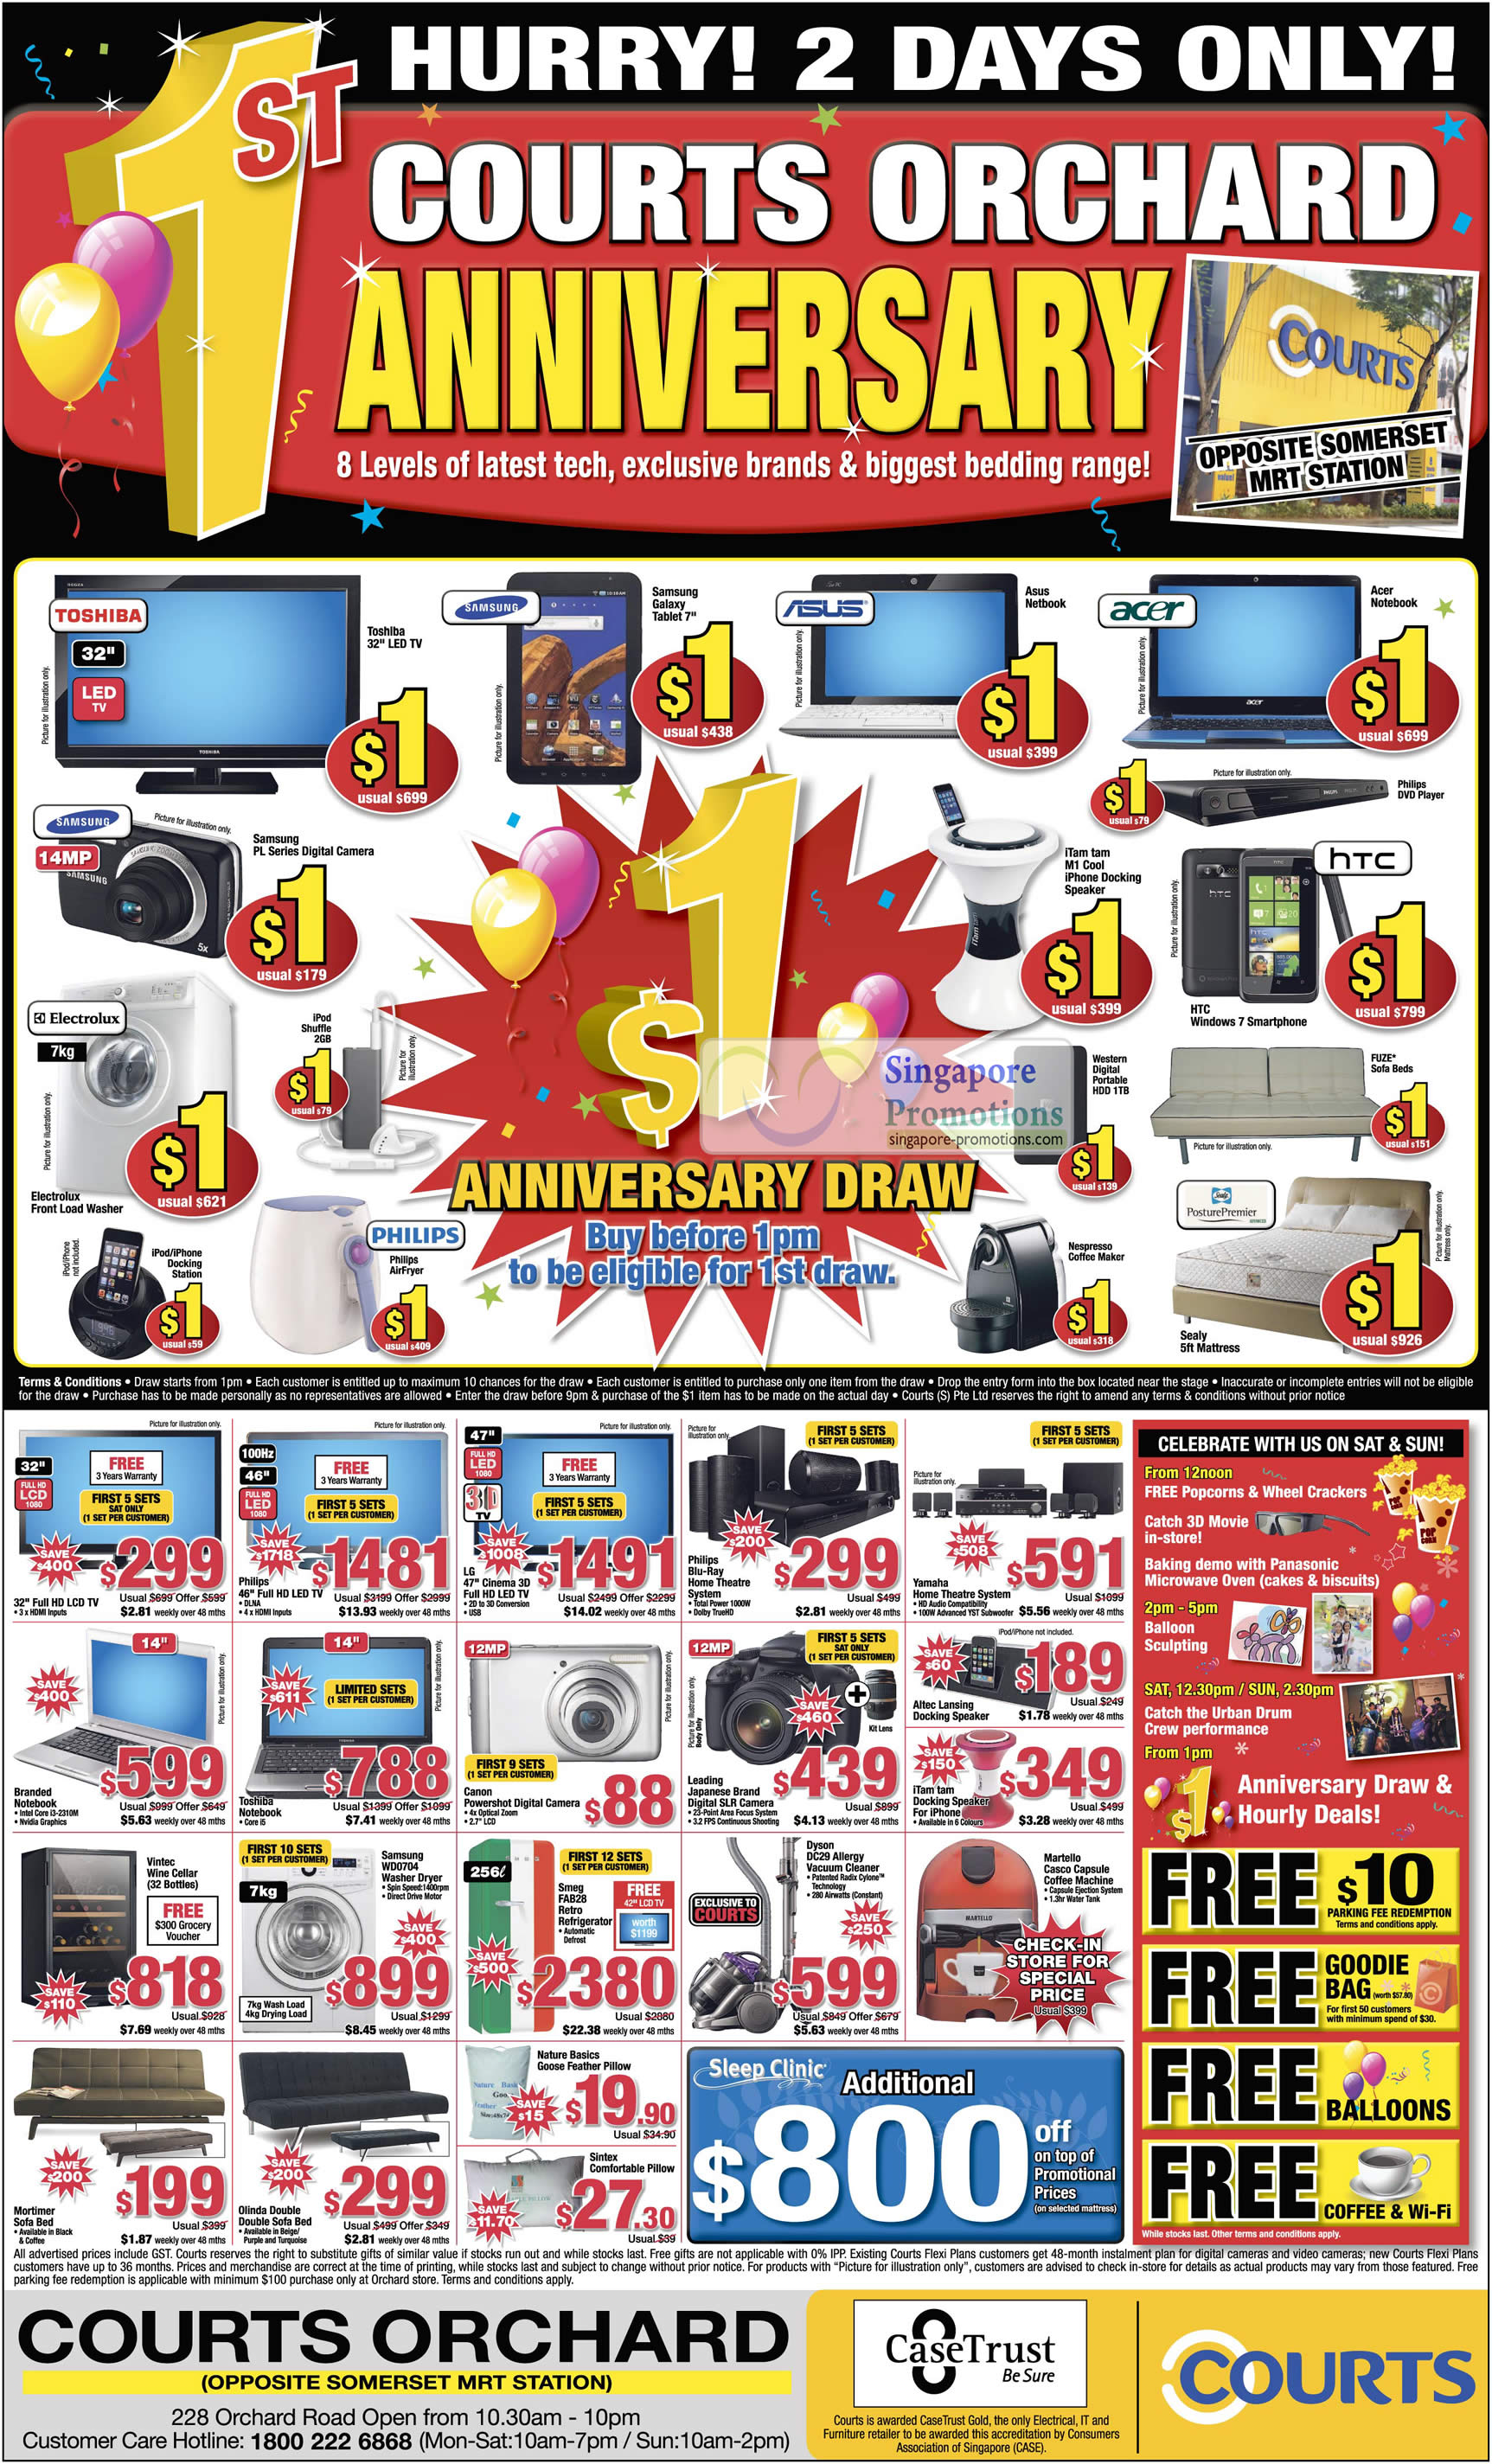 17 Sep Orchard 1st Anniversary One Dollar Deals, TV, Samsung PL Series, Samsung Galaxy Tablet, Notebook, iTam Tam M1 Cool iPhone Docking Speaker